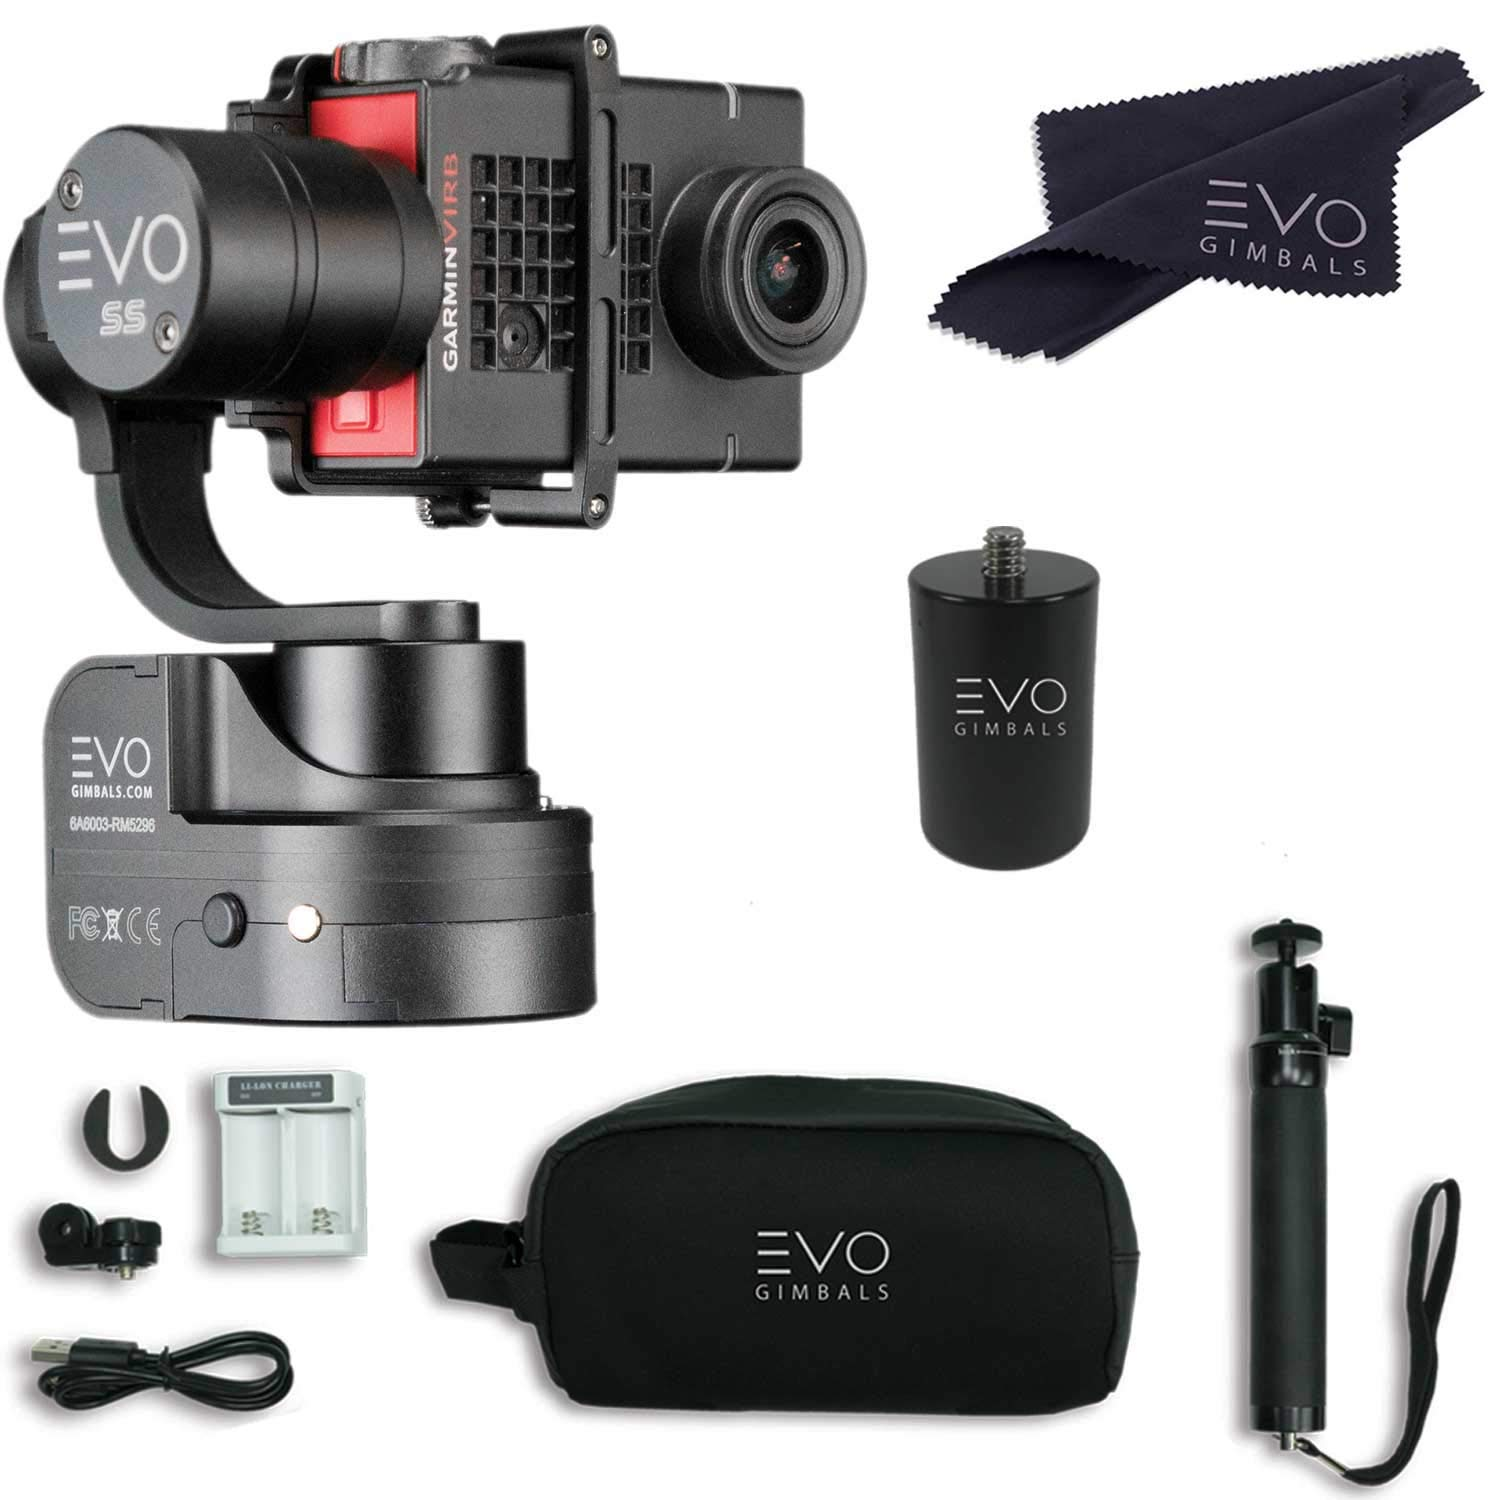 EVO SS 3 Axis Wearable Gimbal - Stabilizer for GoPro Hero4, Hero5, Hero6 Black, Yi 4K, Garmin Virb Ultra 30 - Bundle Includes - EVO SS Gimbal, EVO PA-100 Painter's Pole Adapter (2 Items) by EVO Gimbals